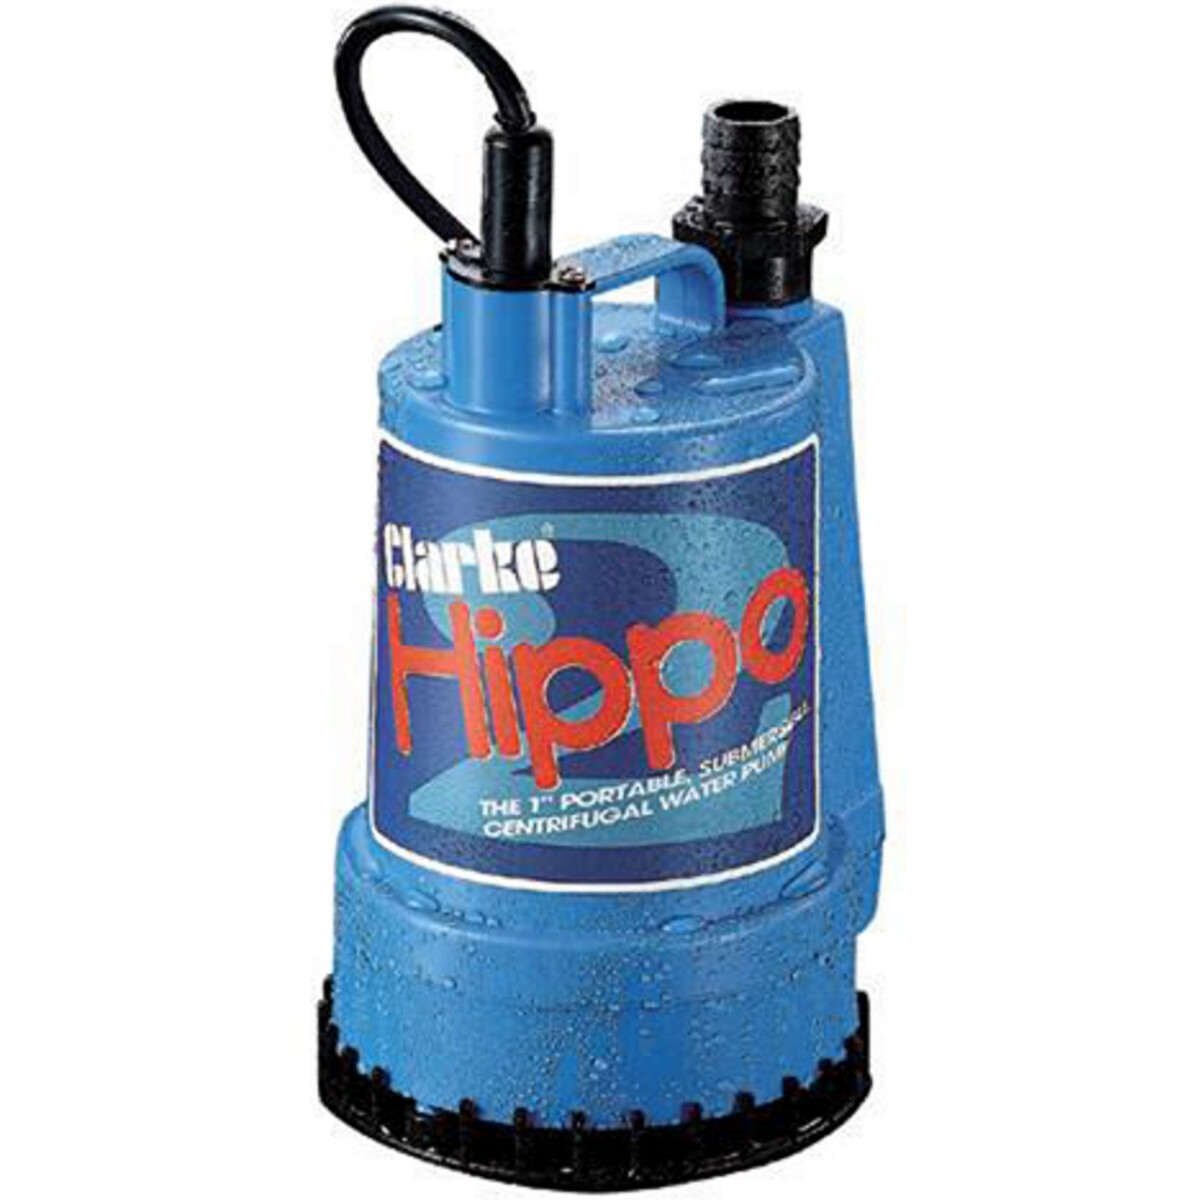 """Clarke Hippo 2 Clean Water 250W 230v 1"""" Submersible Water Pump 7230025"""